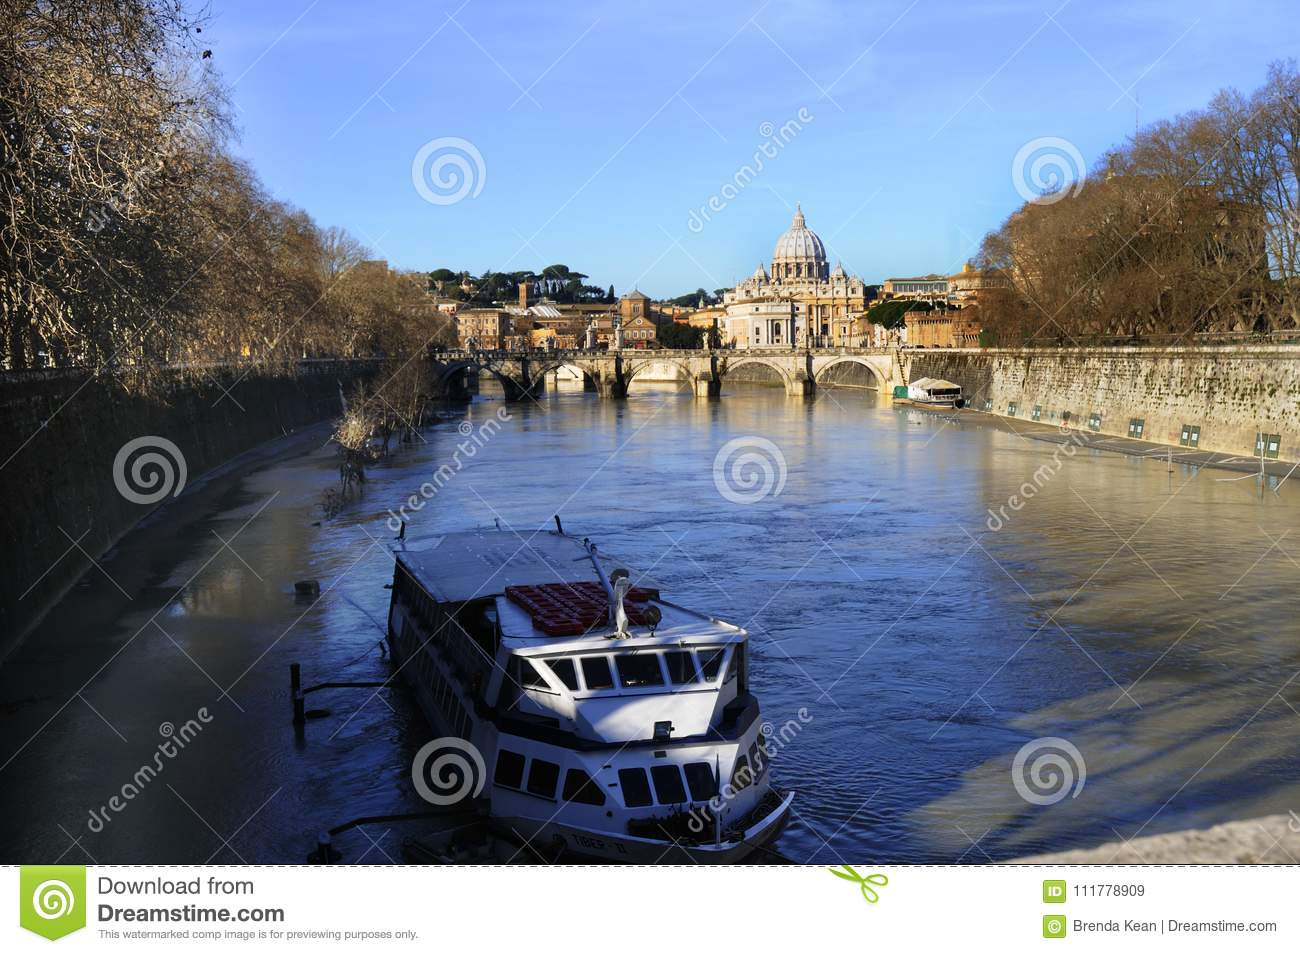 The River Tiber that divides ome Italy